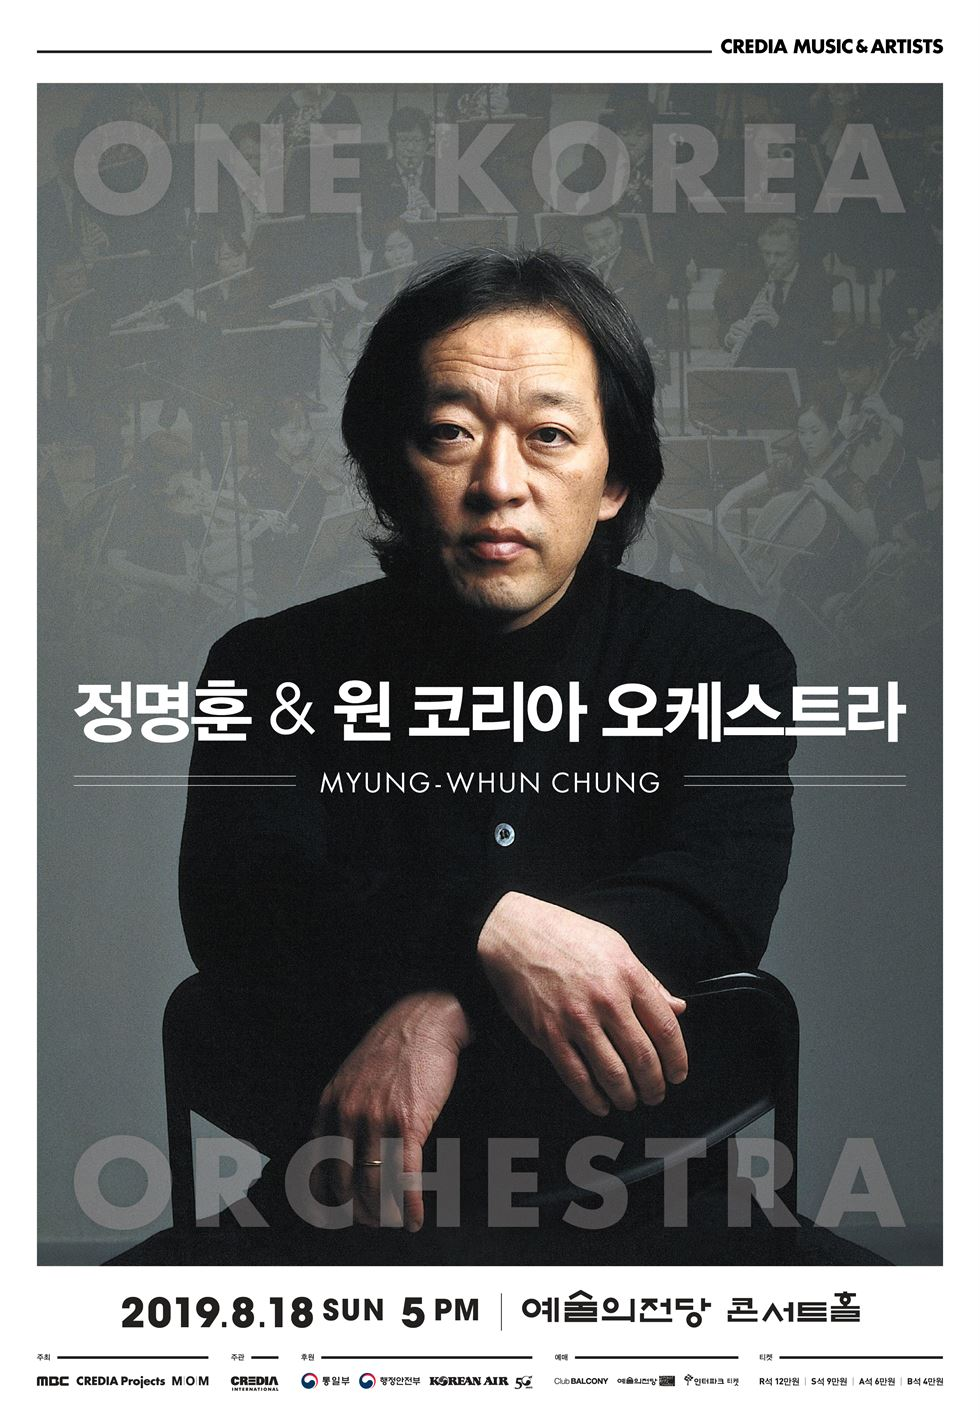 Maestro Chung Myung-whun and the One Korea Orchestra hold an annual concert, aiming to promote inter-Korean peace and cooperation in arts and culture. The photo was taken during the 'Peace Concert' at the Seoul Arts Center, Sept. 2, 2018. Courtesy of CREDIA